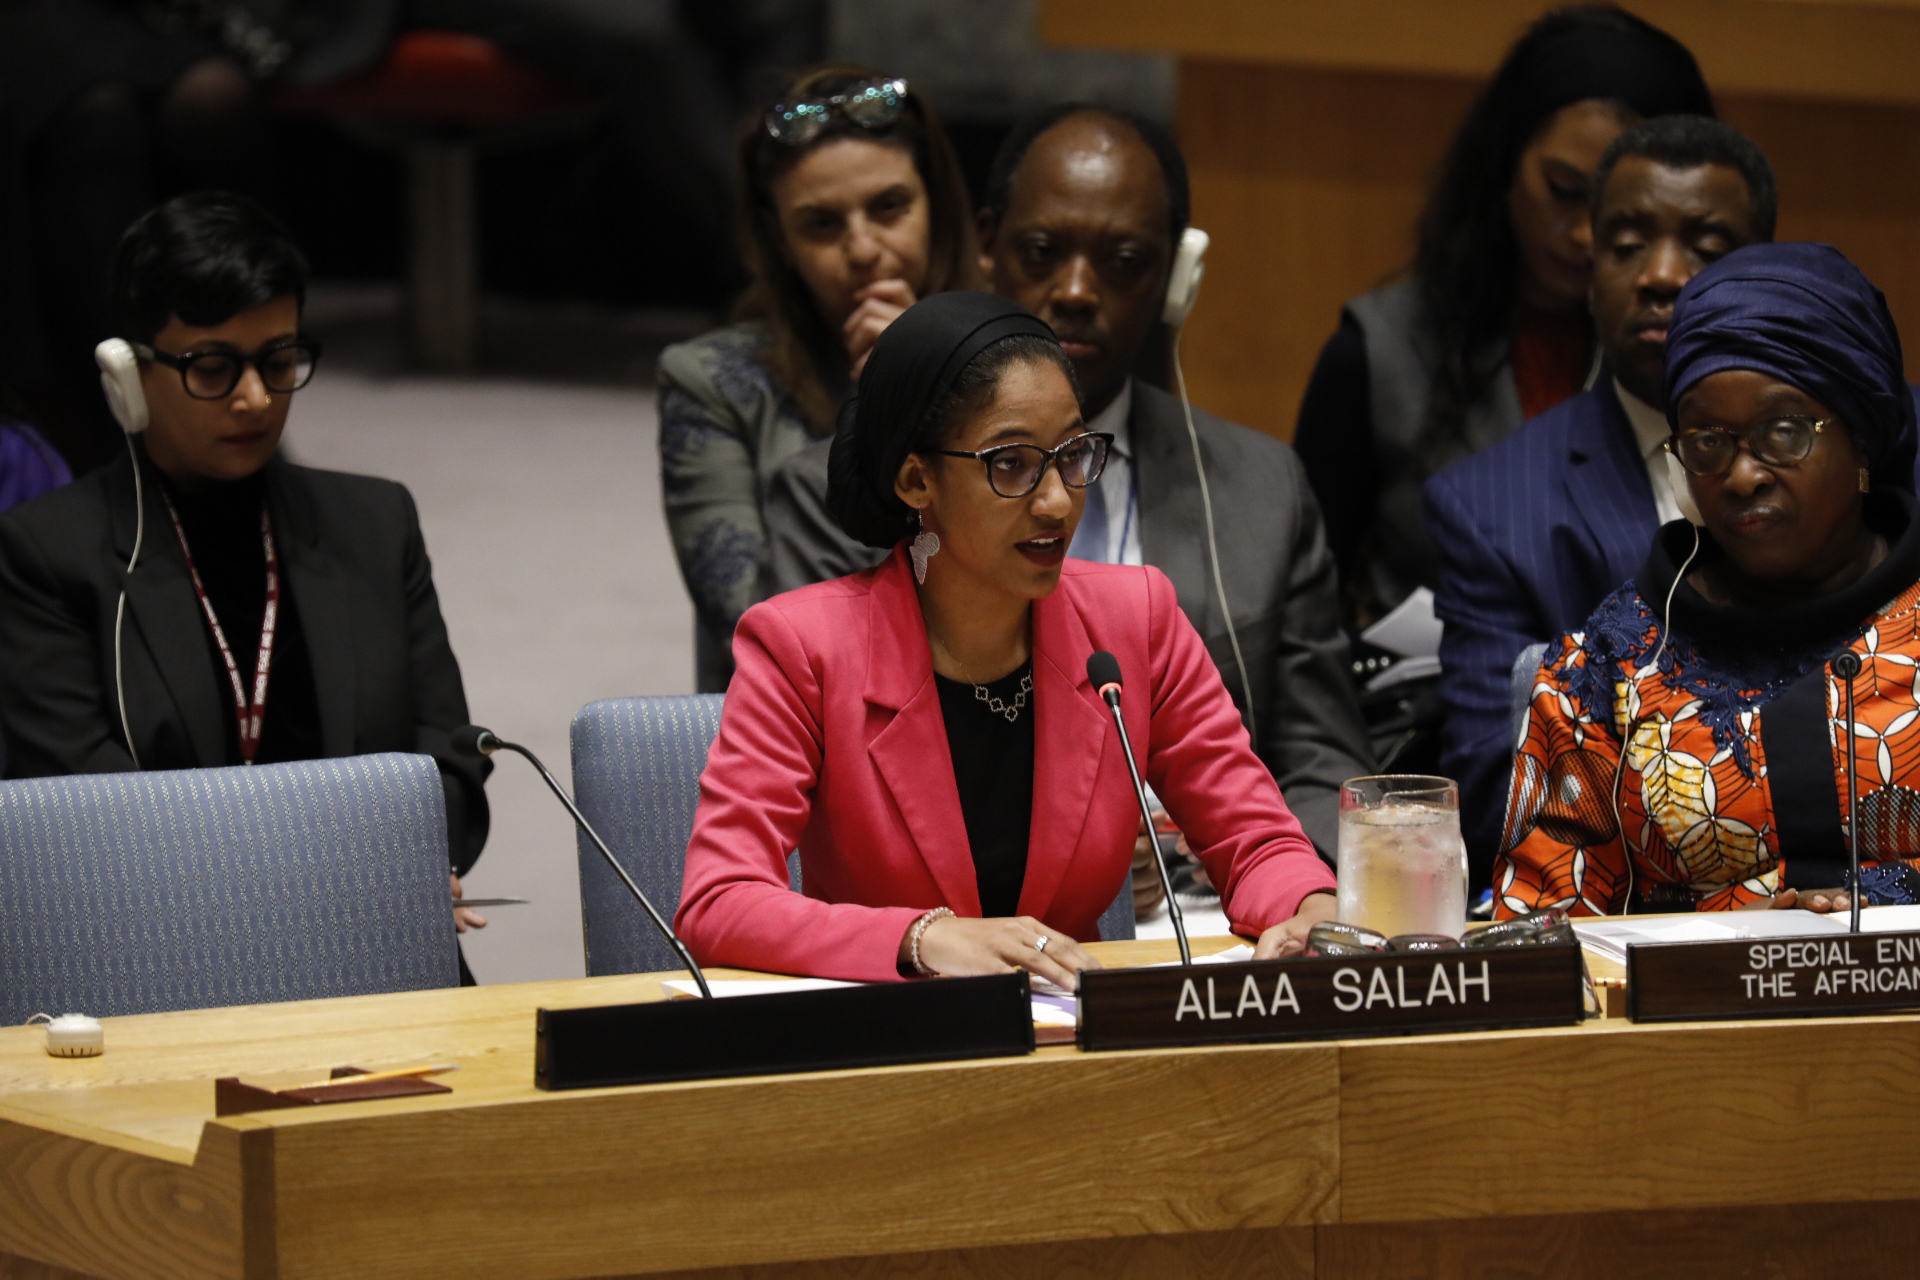 Statement by Ms. Alaa Salah at the UN Security Council Open Debate on Women, Peace and Security